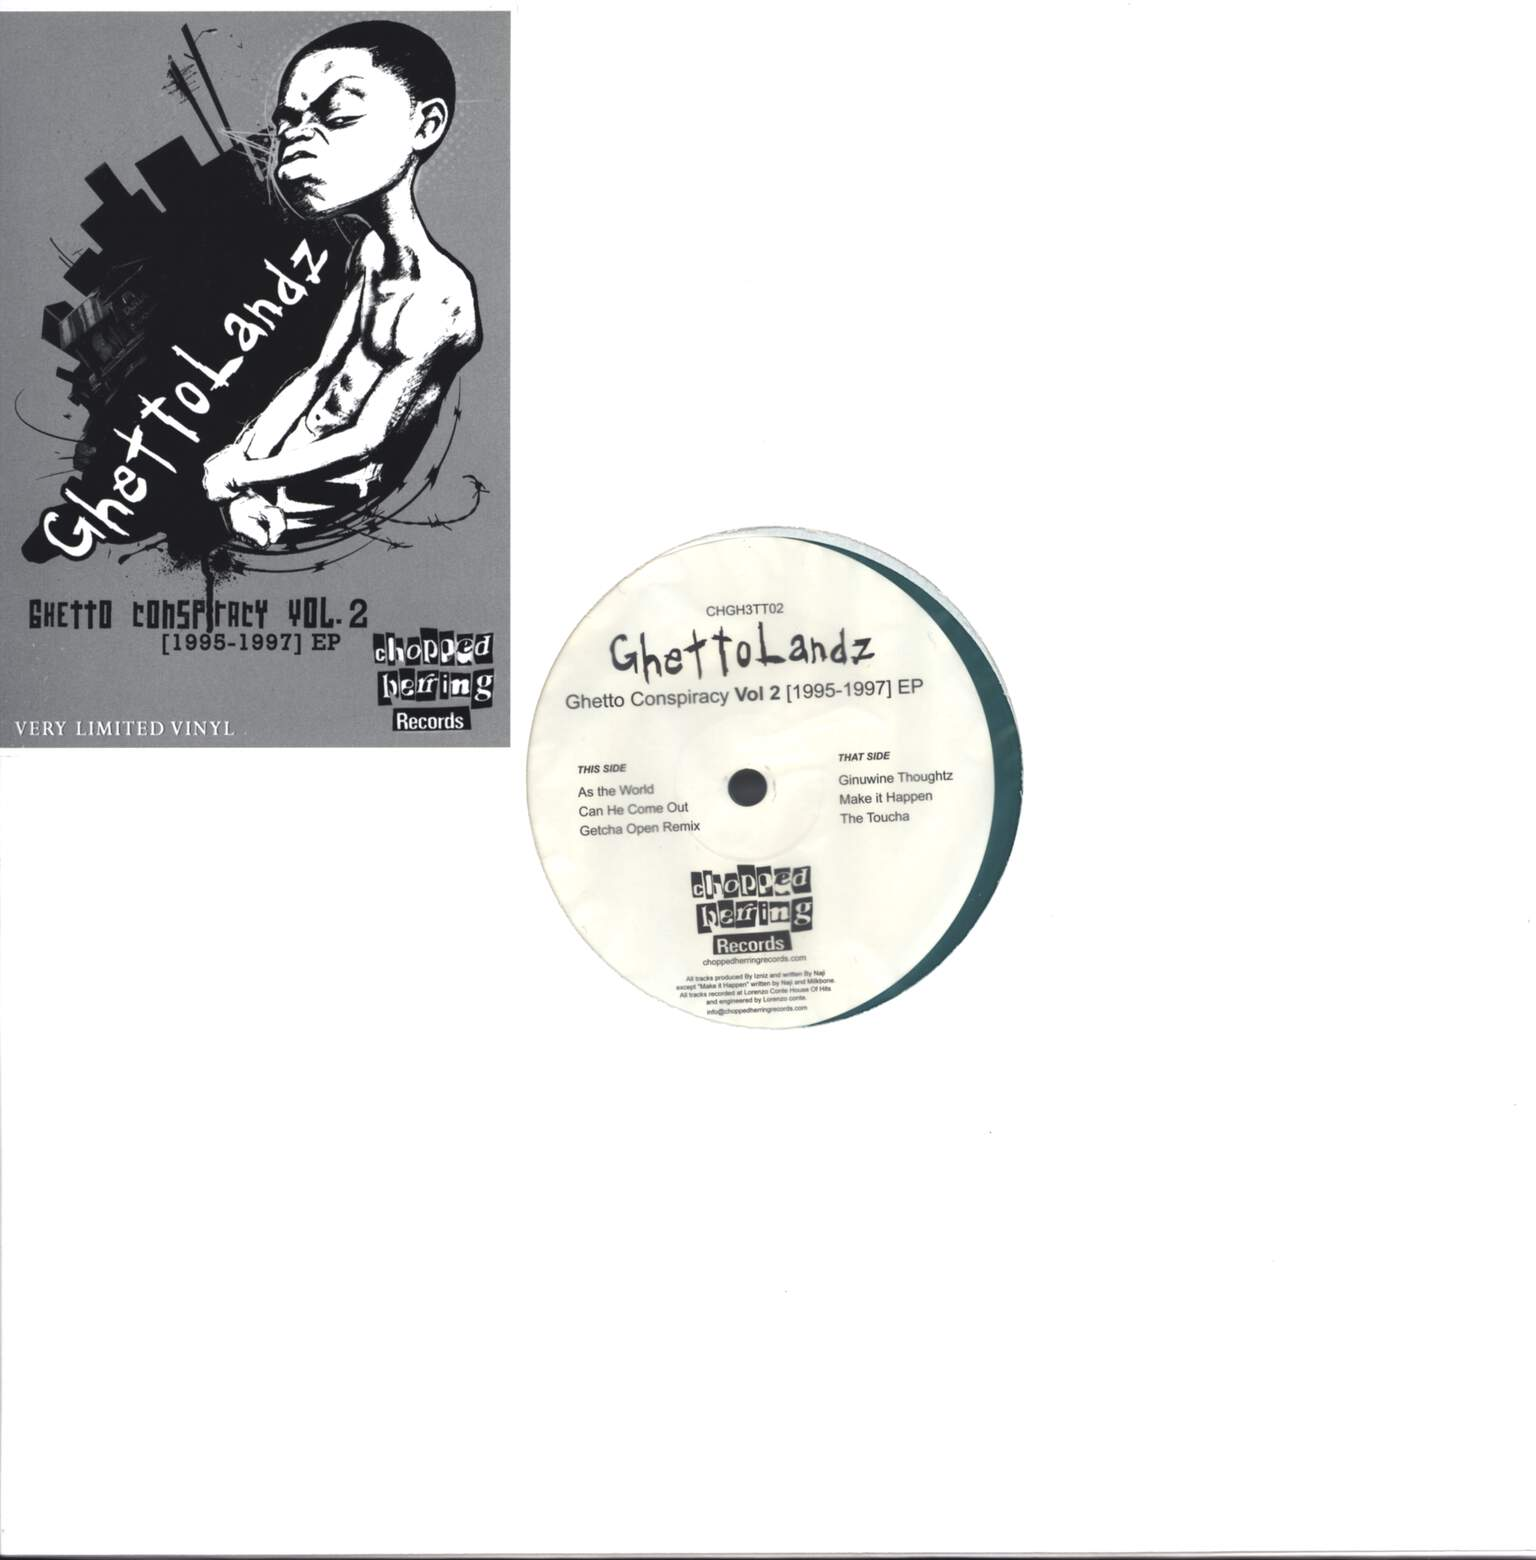 "Ghettolandz: Ghetto Conspiracy Vol. 2 [1995-1997] EP, 12"" Maxi Single (Vinyl)"